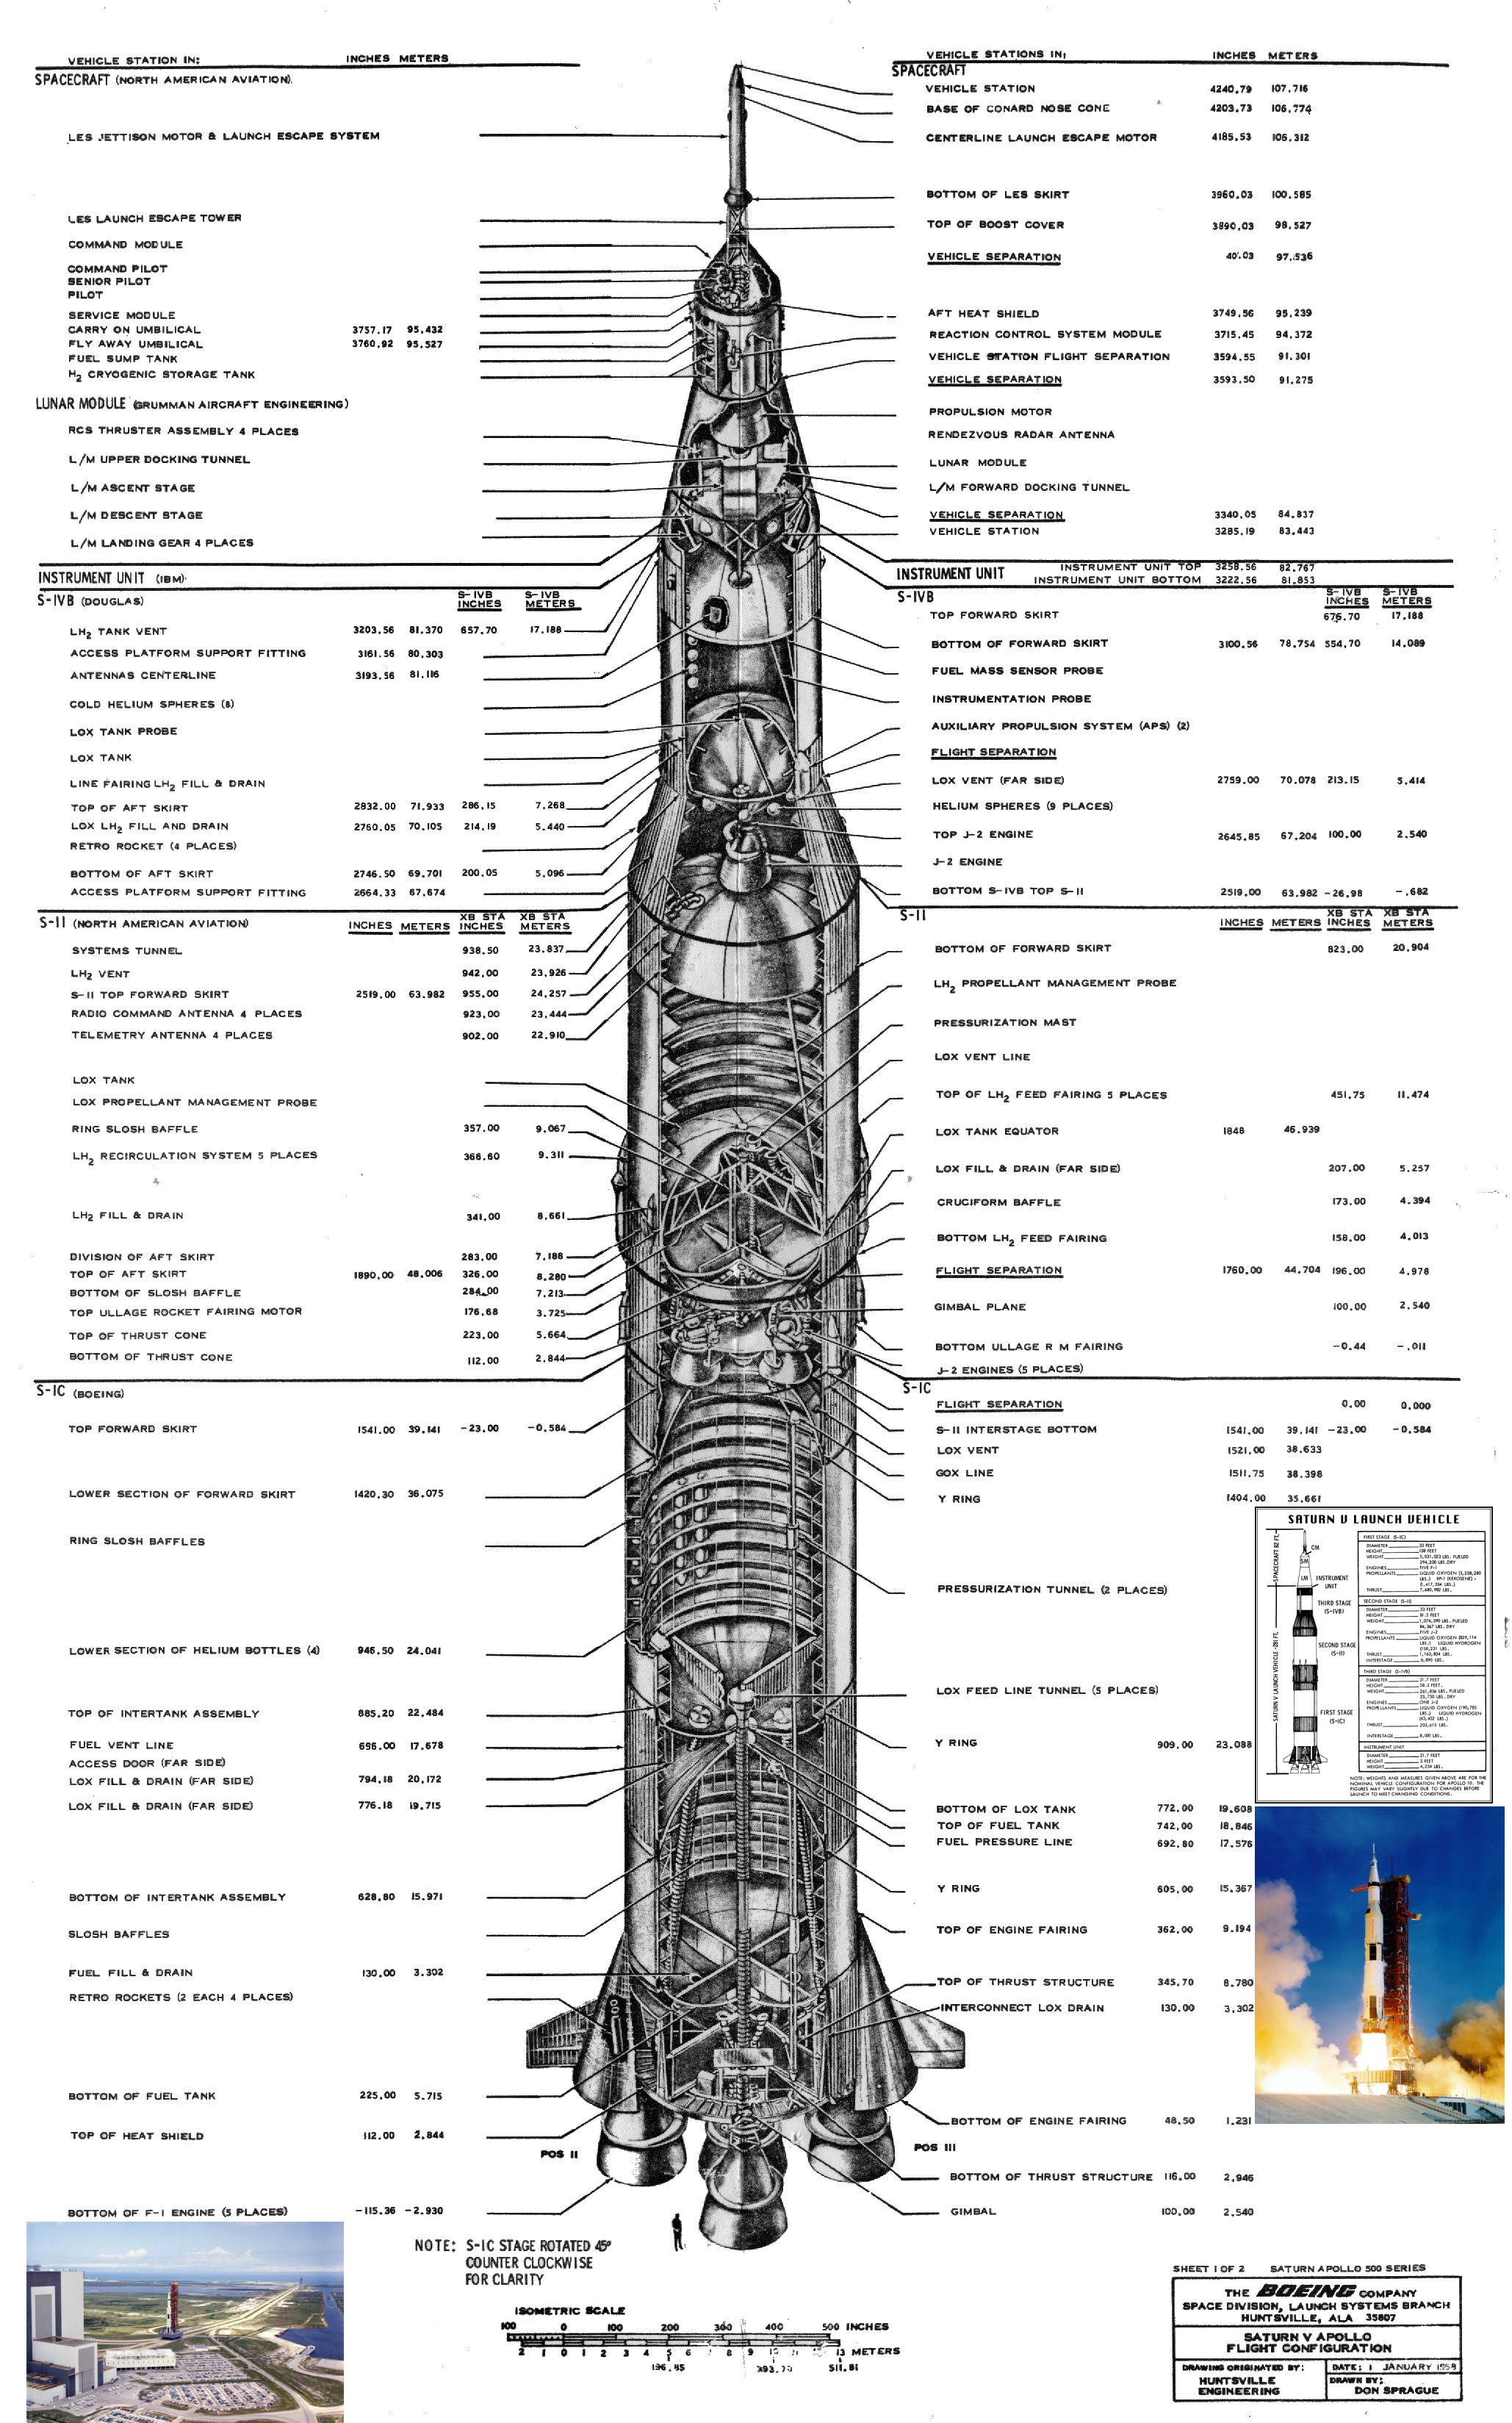 apollo spacecraft configuration - photo #24